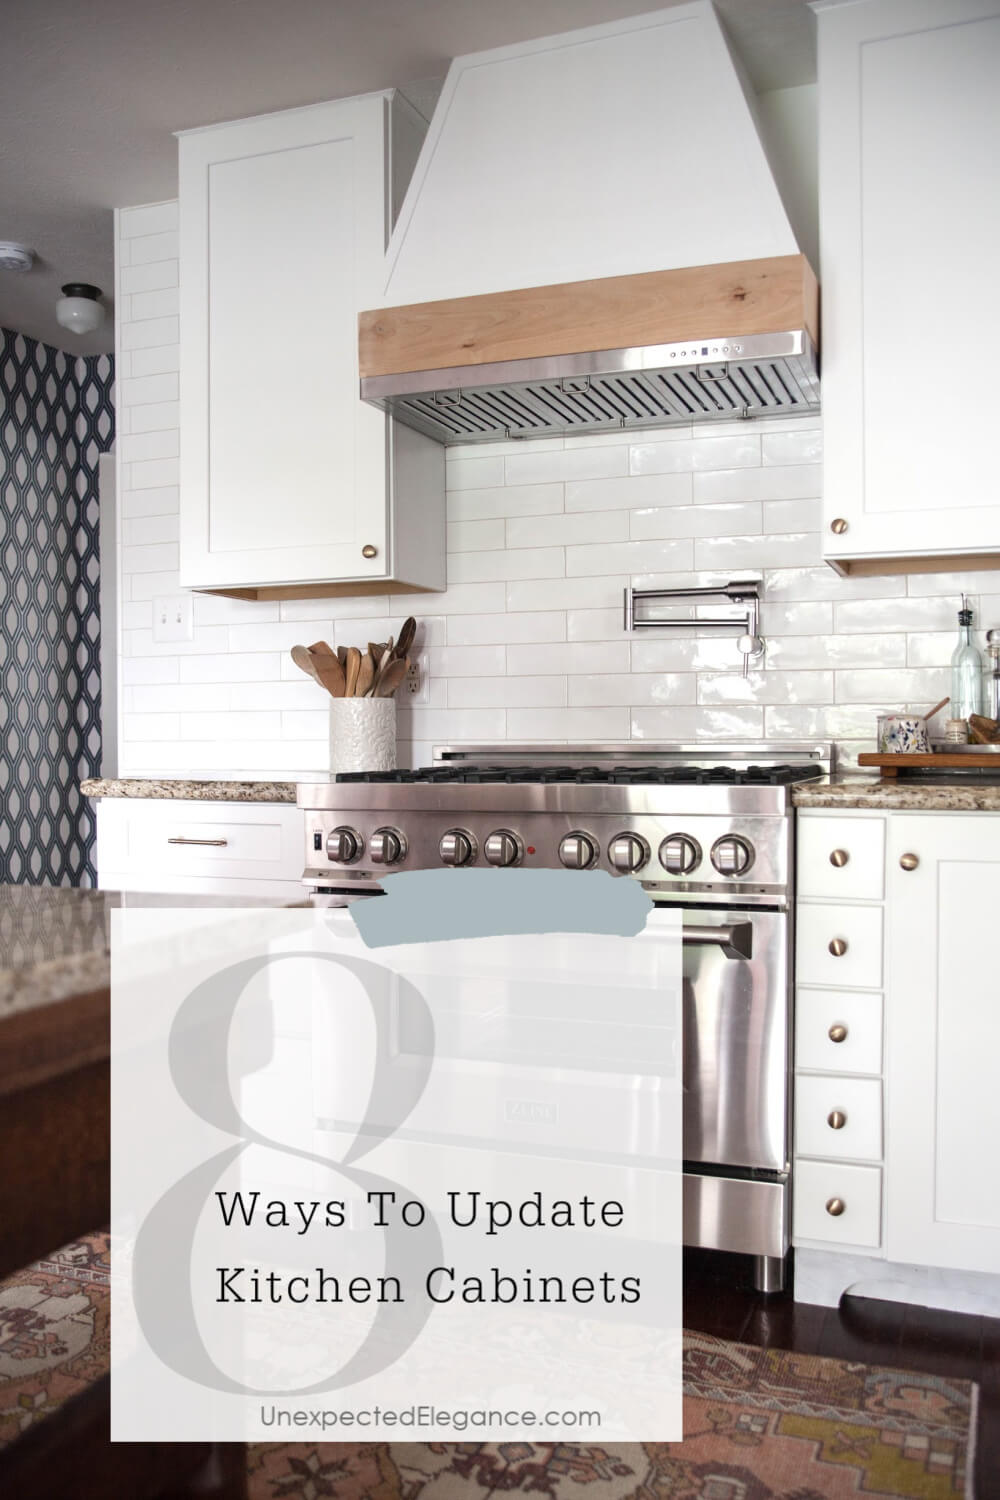 8 Ways To Update Kitchen Cabinets